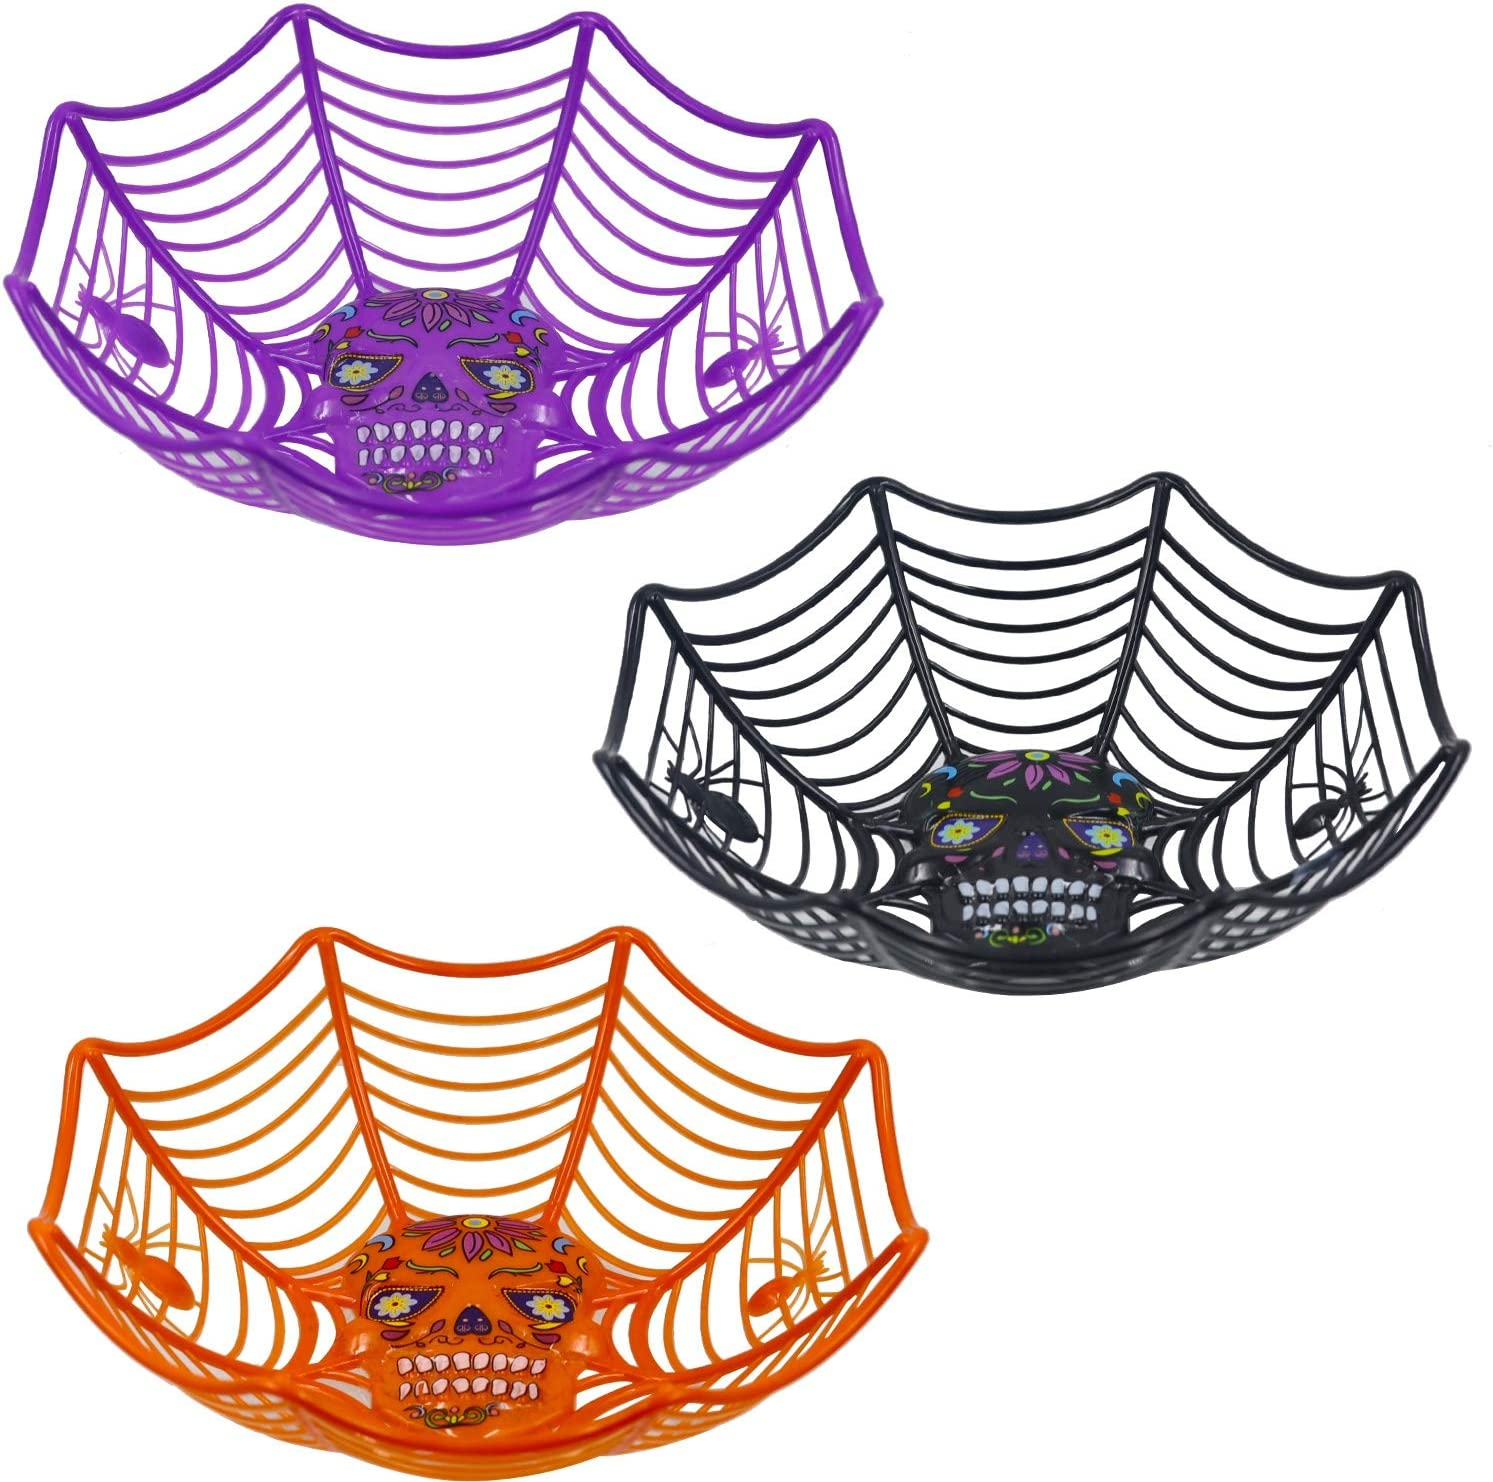 Zcaukya Halloween Party Supplies, 3 Packs Halloween Plastic Trick Treat Bowls, Candy bowl Holder Halloween Spider Web Bowl for Day of The Dead in Black, Orange and Purple